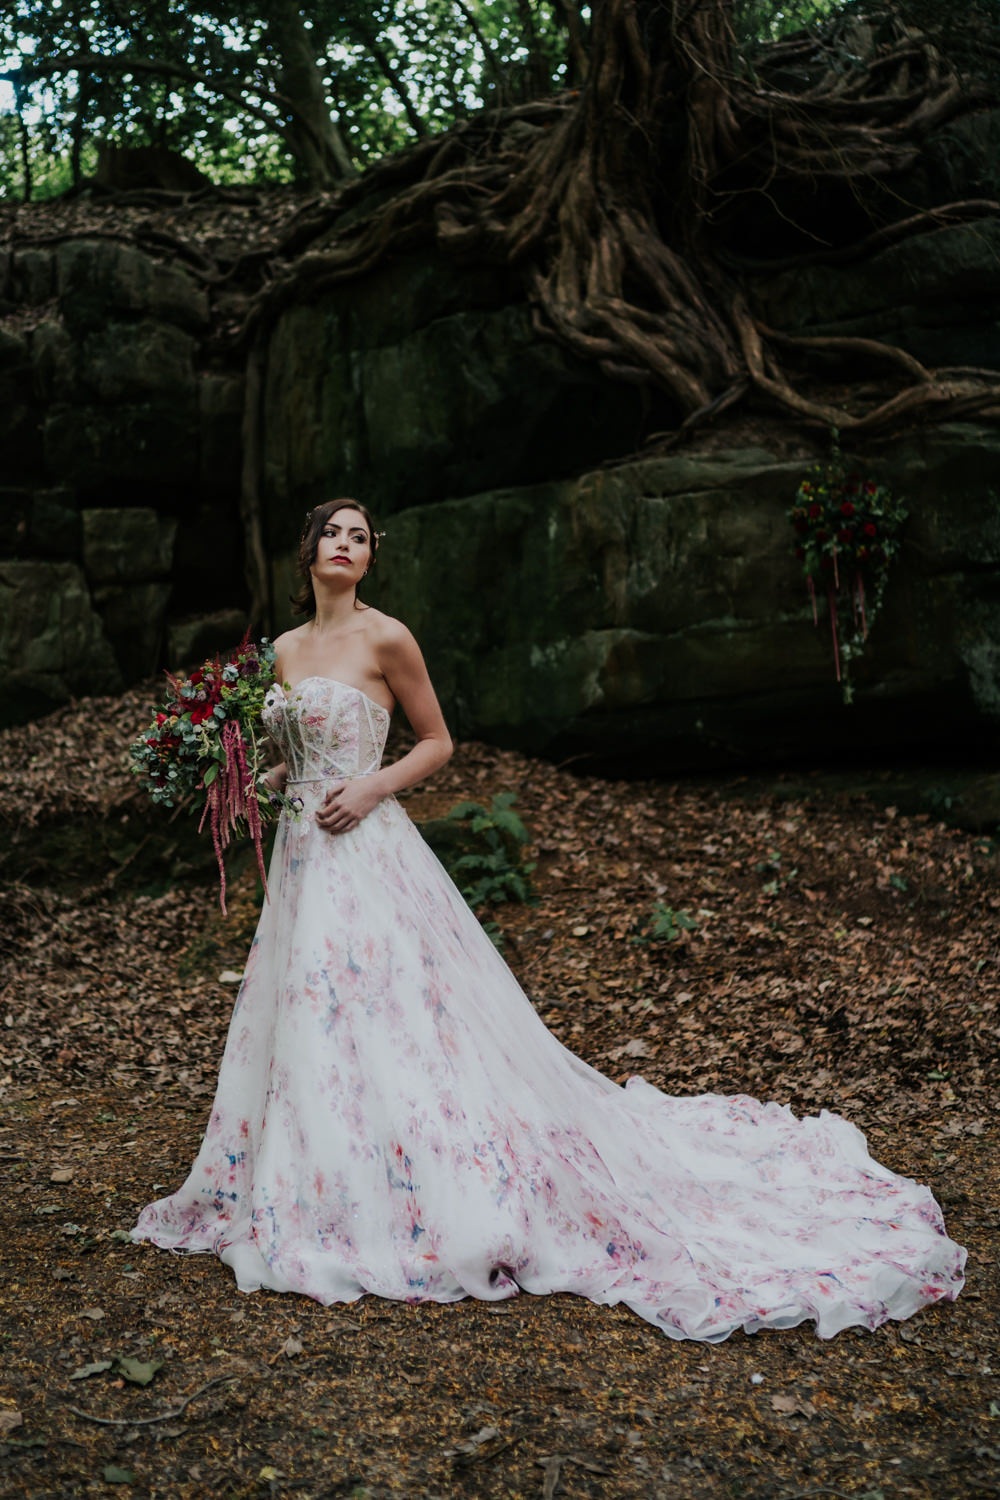 Dress Gown Bride Bridal Pink Floral Tulle Strapless Train Snow White Wedding Inspiration Joasis Photography